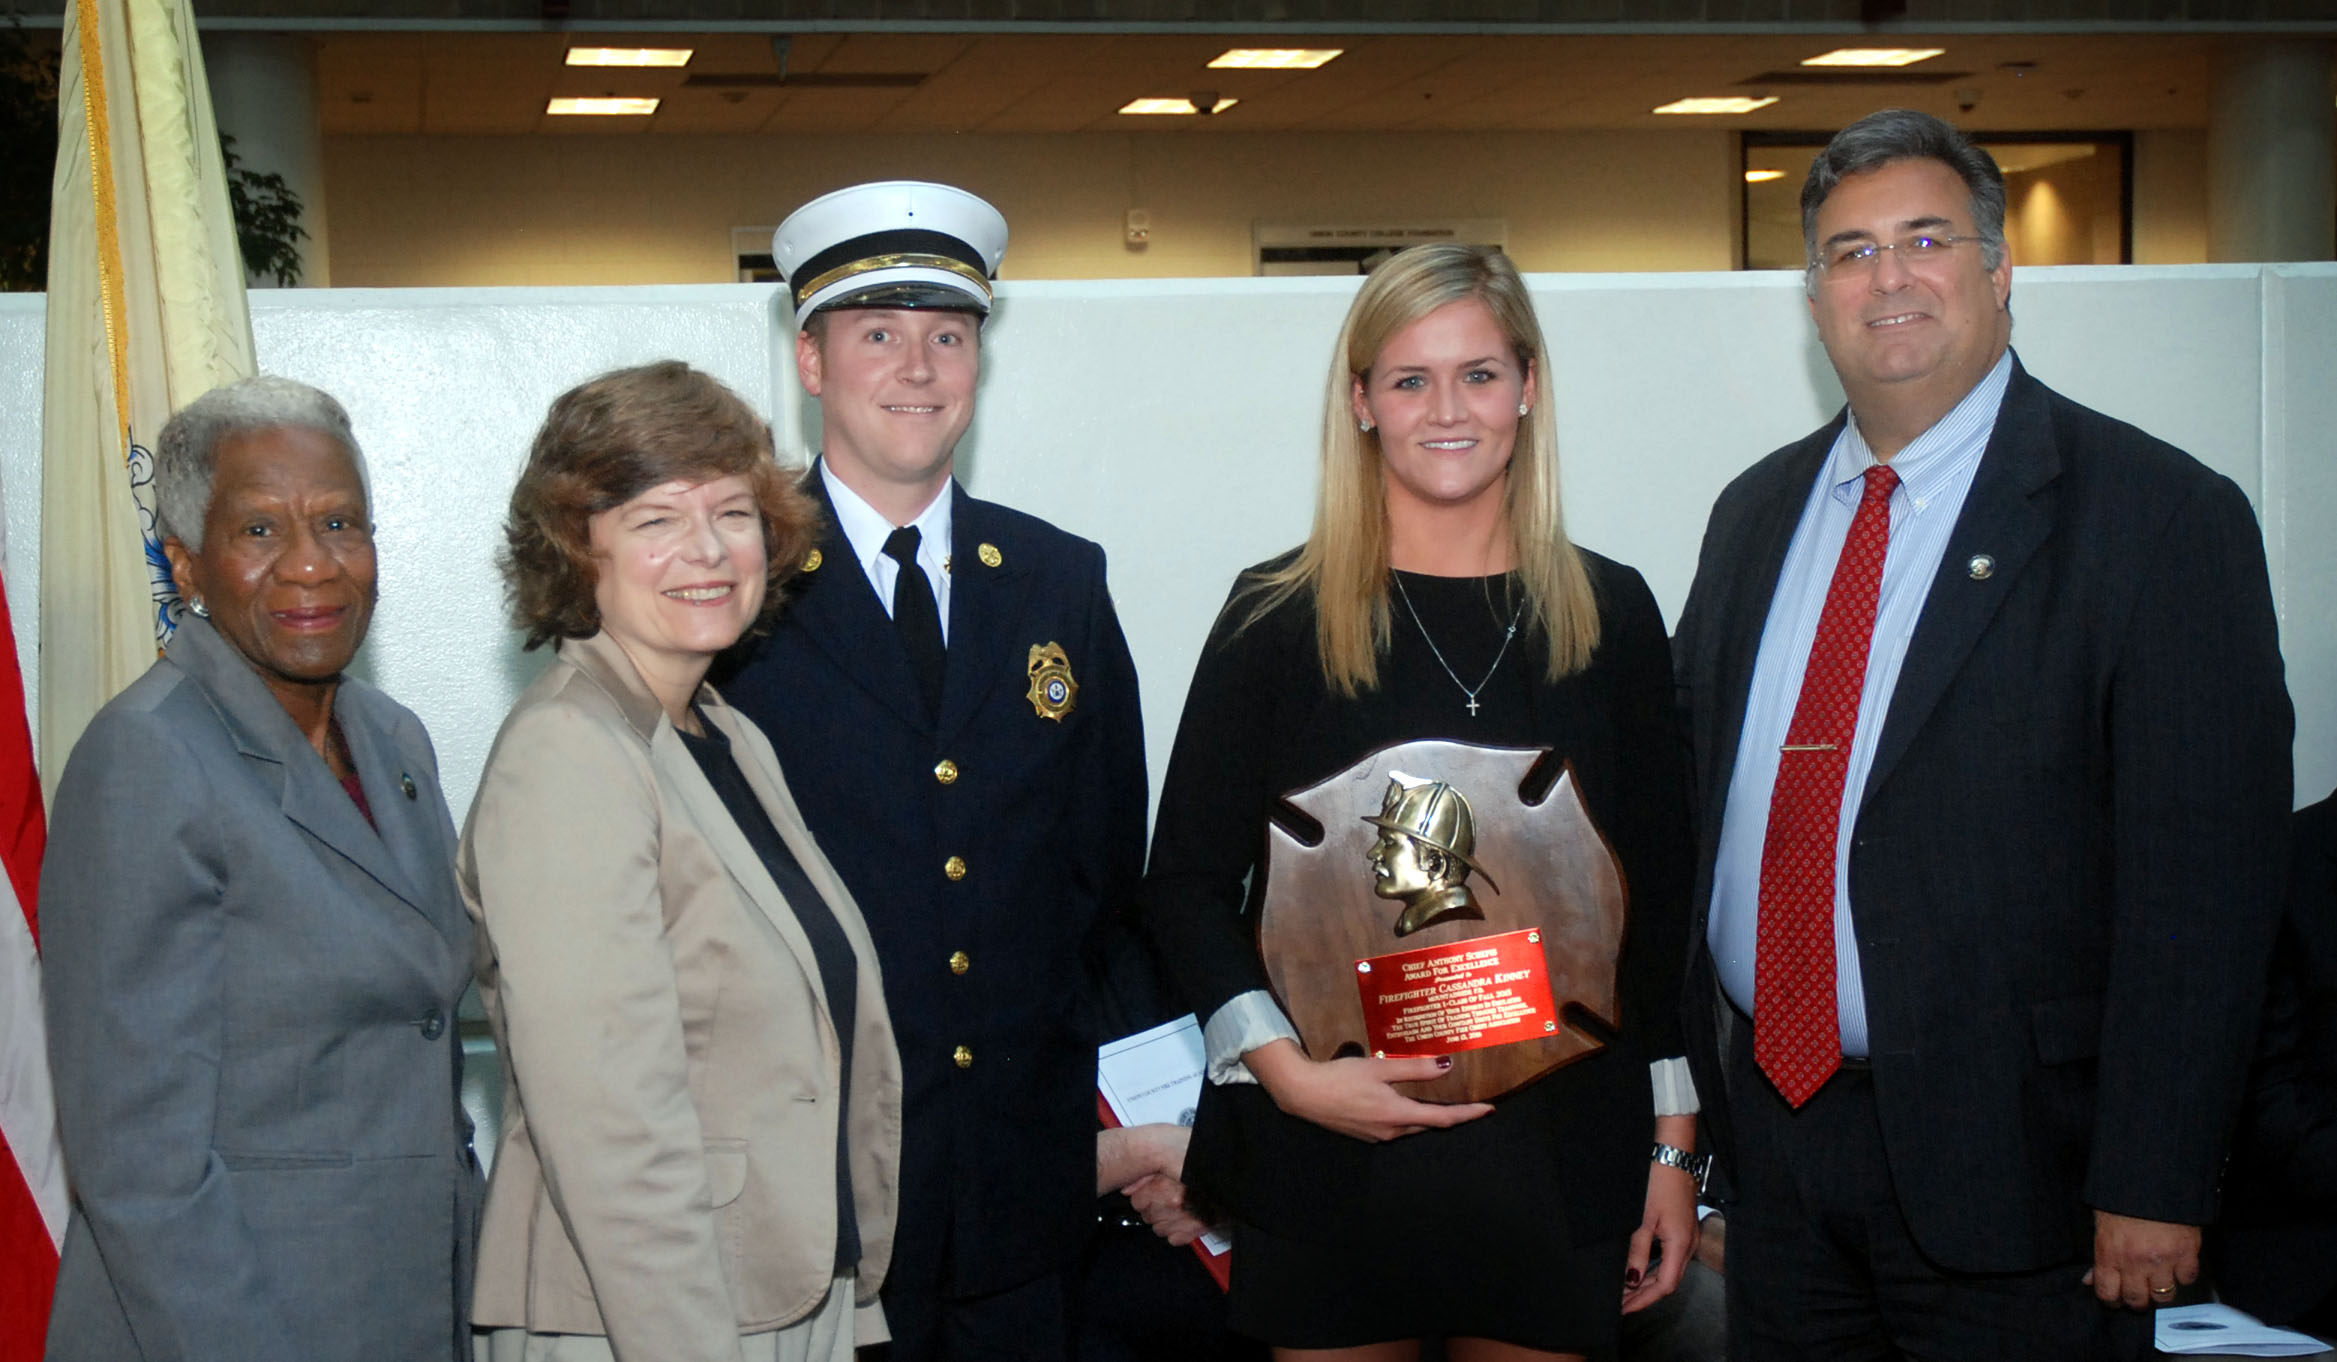 New jersey union county cranford - Union County Freeholders Vernell Wright Bette Jane Kowalski And Alexander Mirabella Congratulate Cassandra Kinney Of The Mountainside Fire Department On